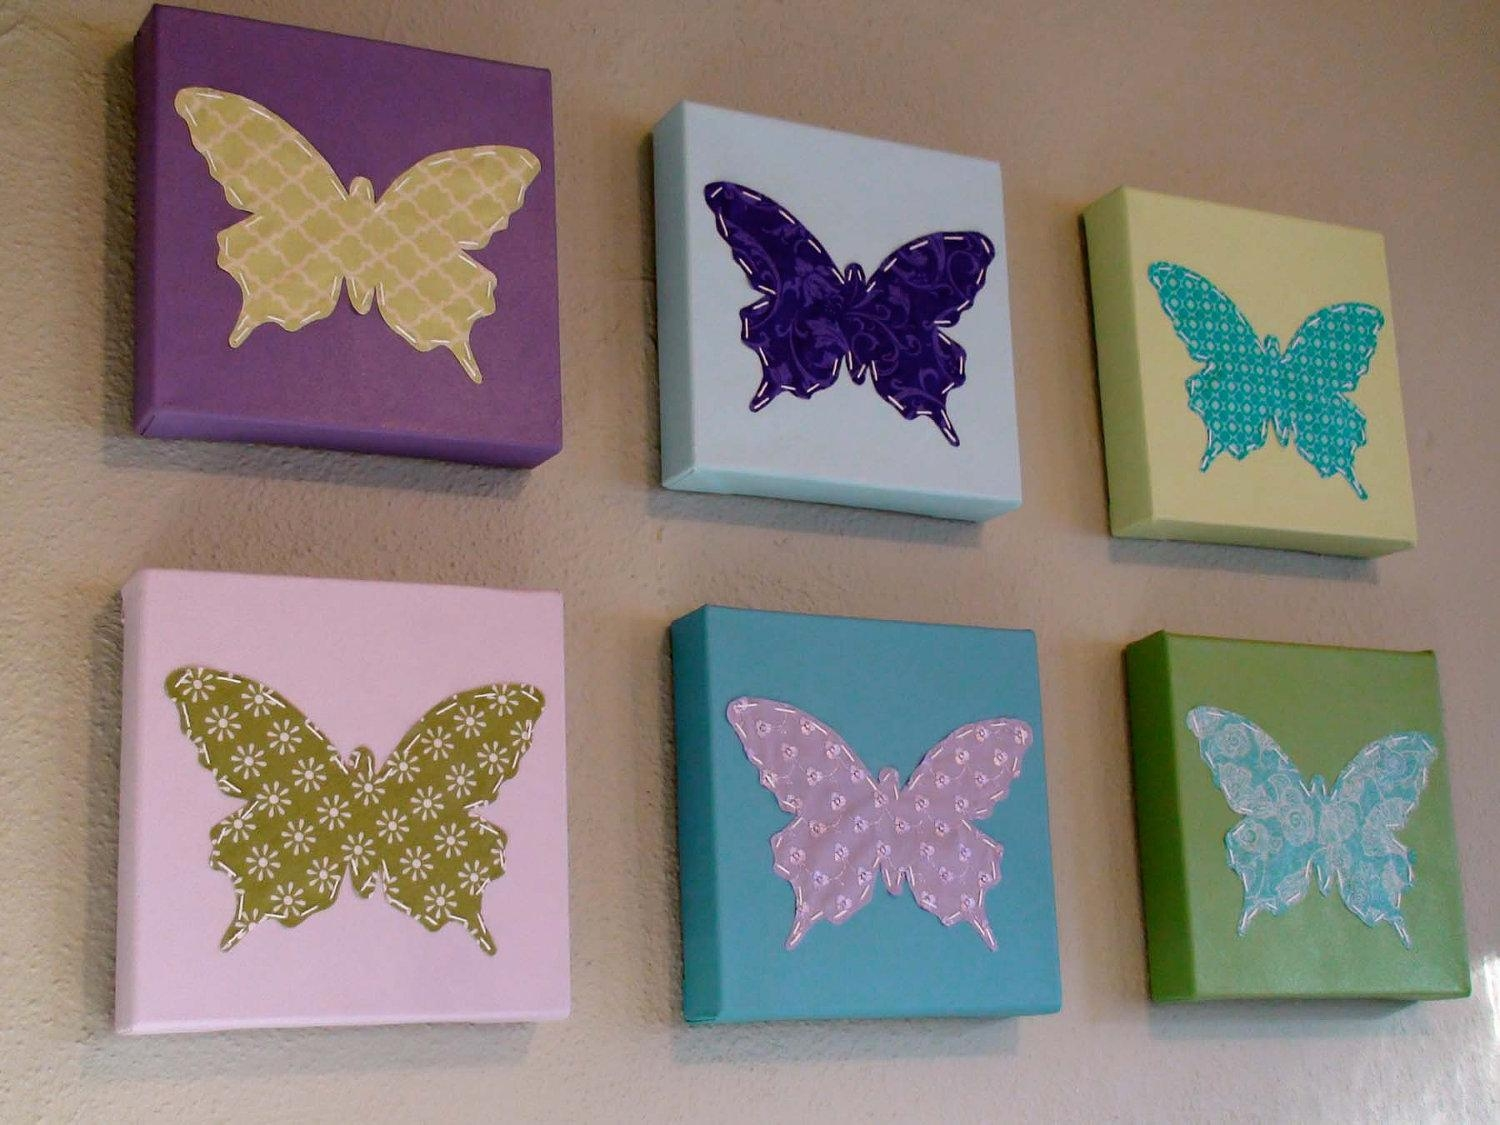 Butterfly Canvas Wall Art Diy | Wallartideas With Regard To Butterfly Canvas Wall Art (View 2 of 20)